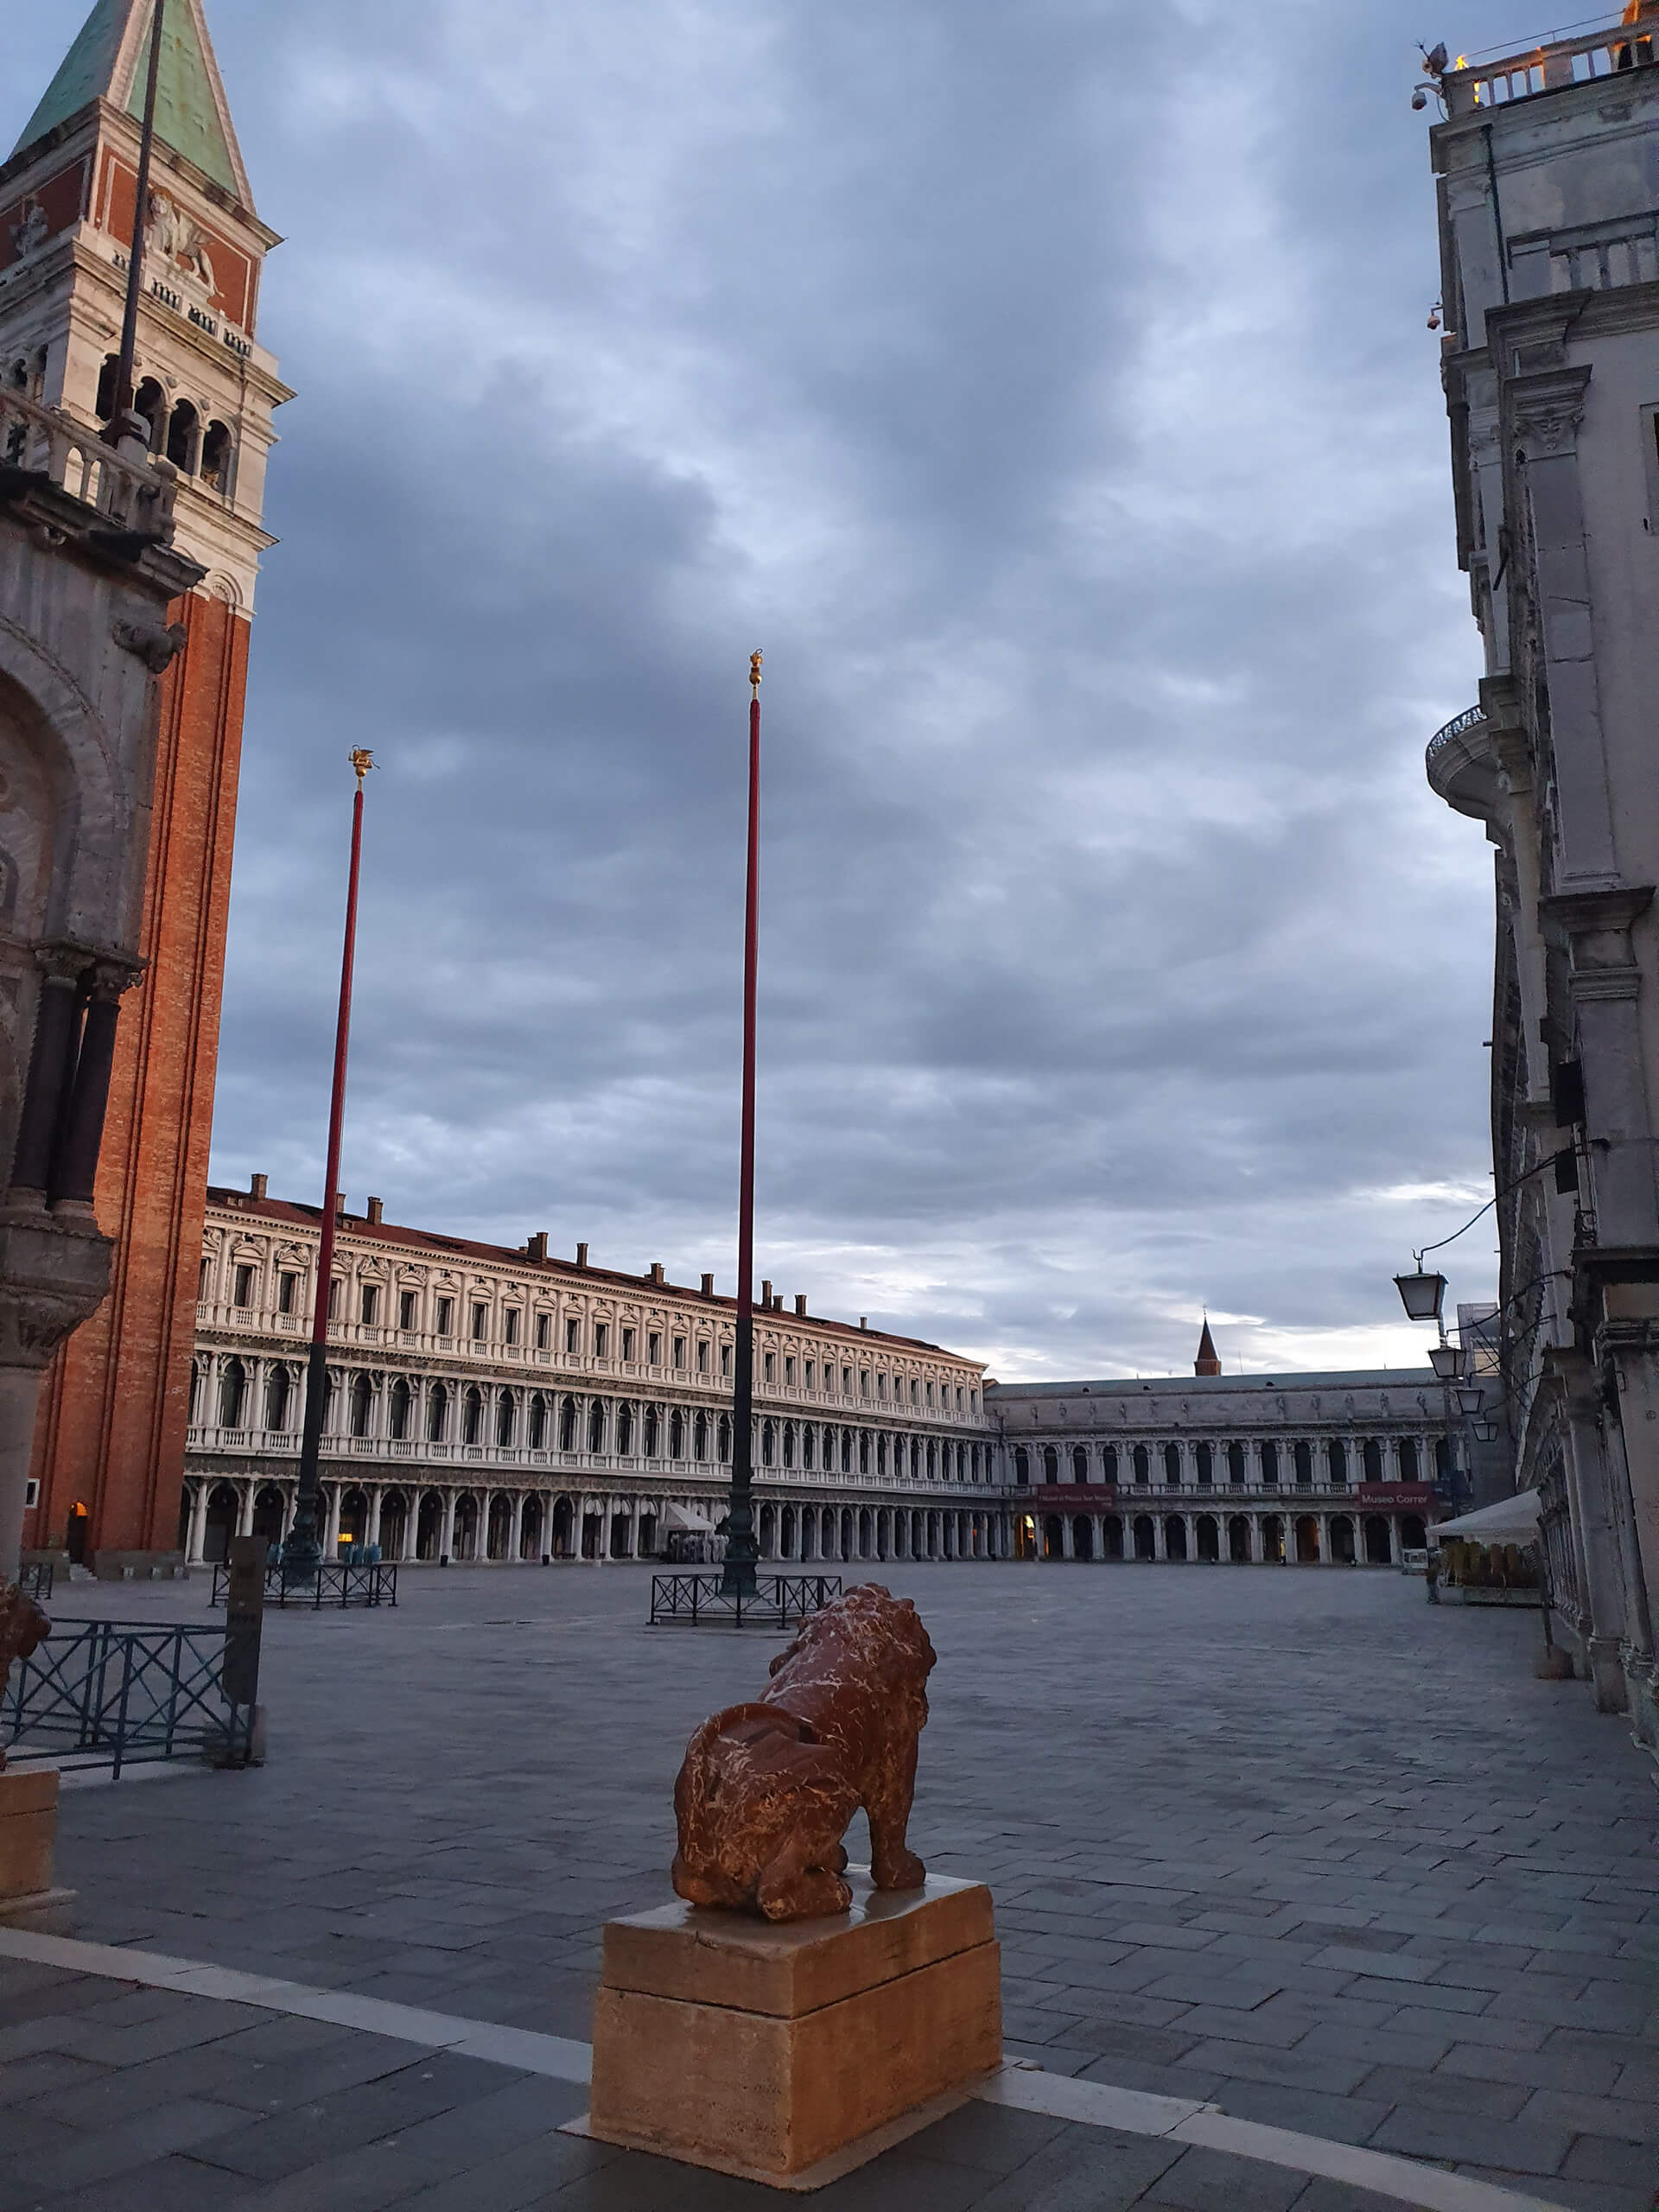 San Marco Piazza during the Venetian lockdown | Venice reopens post COVID-19 lockdown | STIRworld